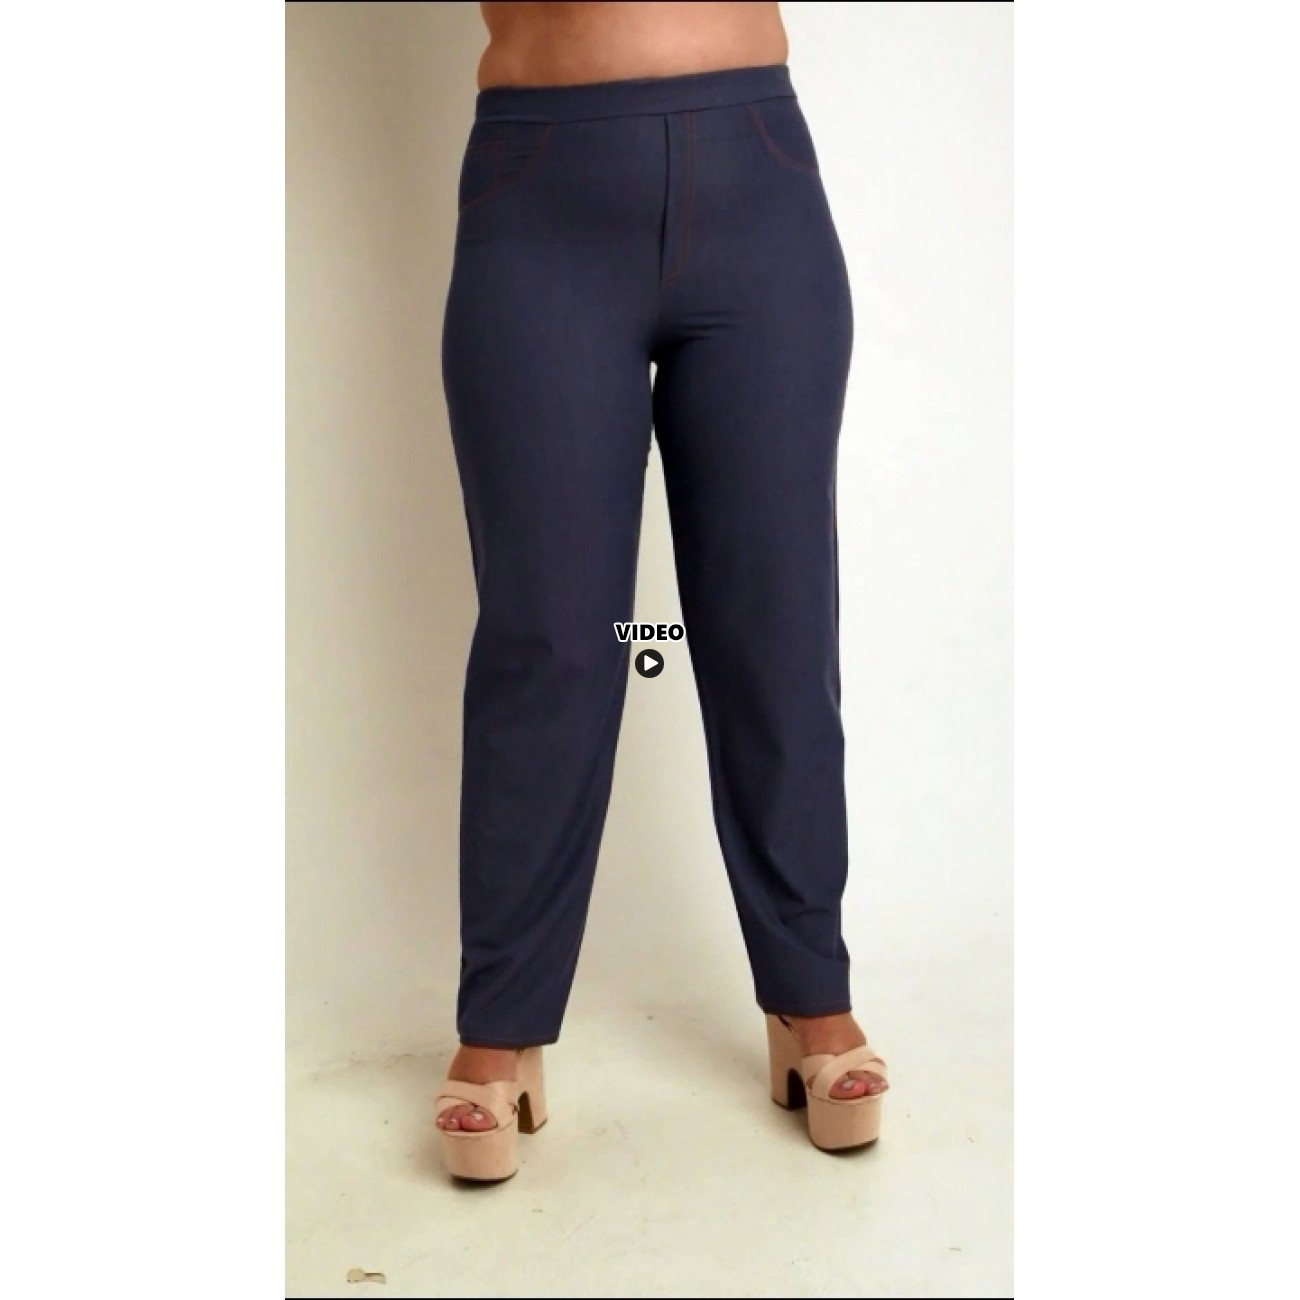 A20-659 Fitted trousers with 5 pockets - Light blue